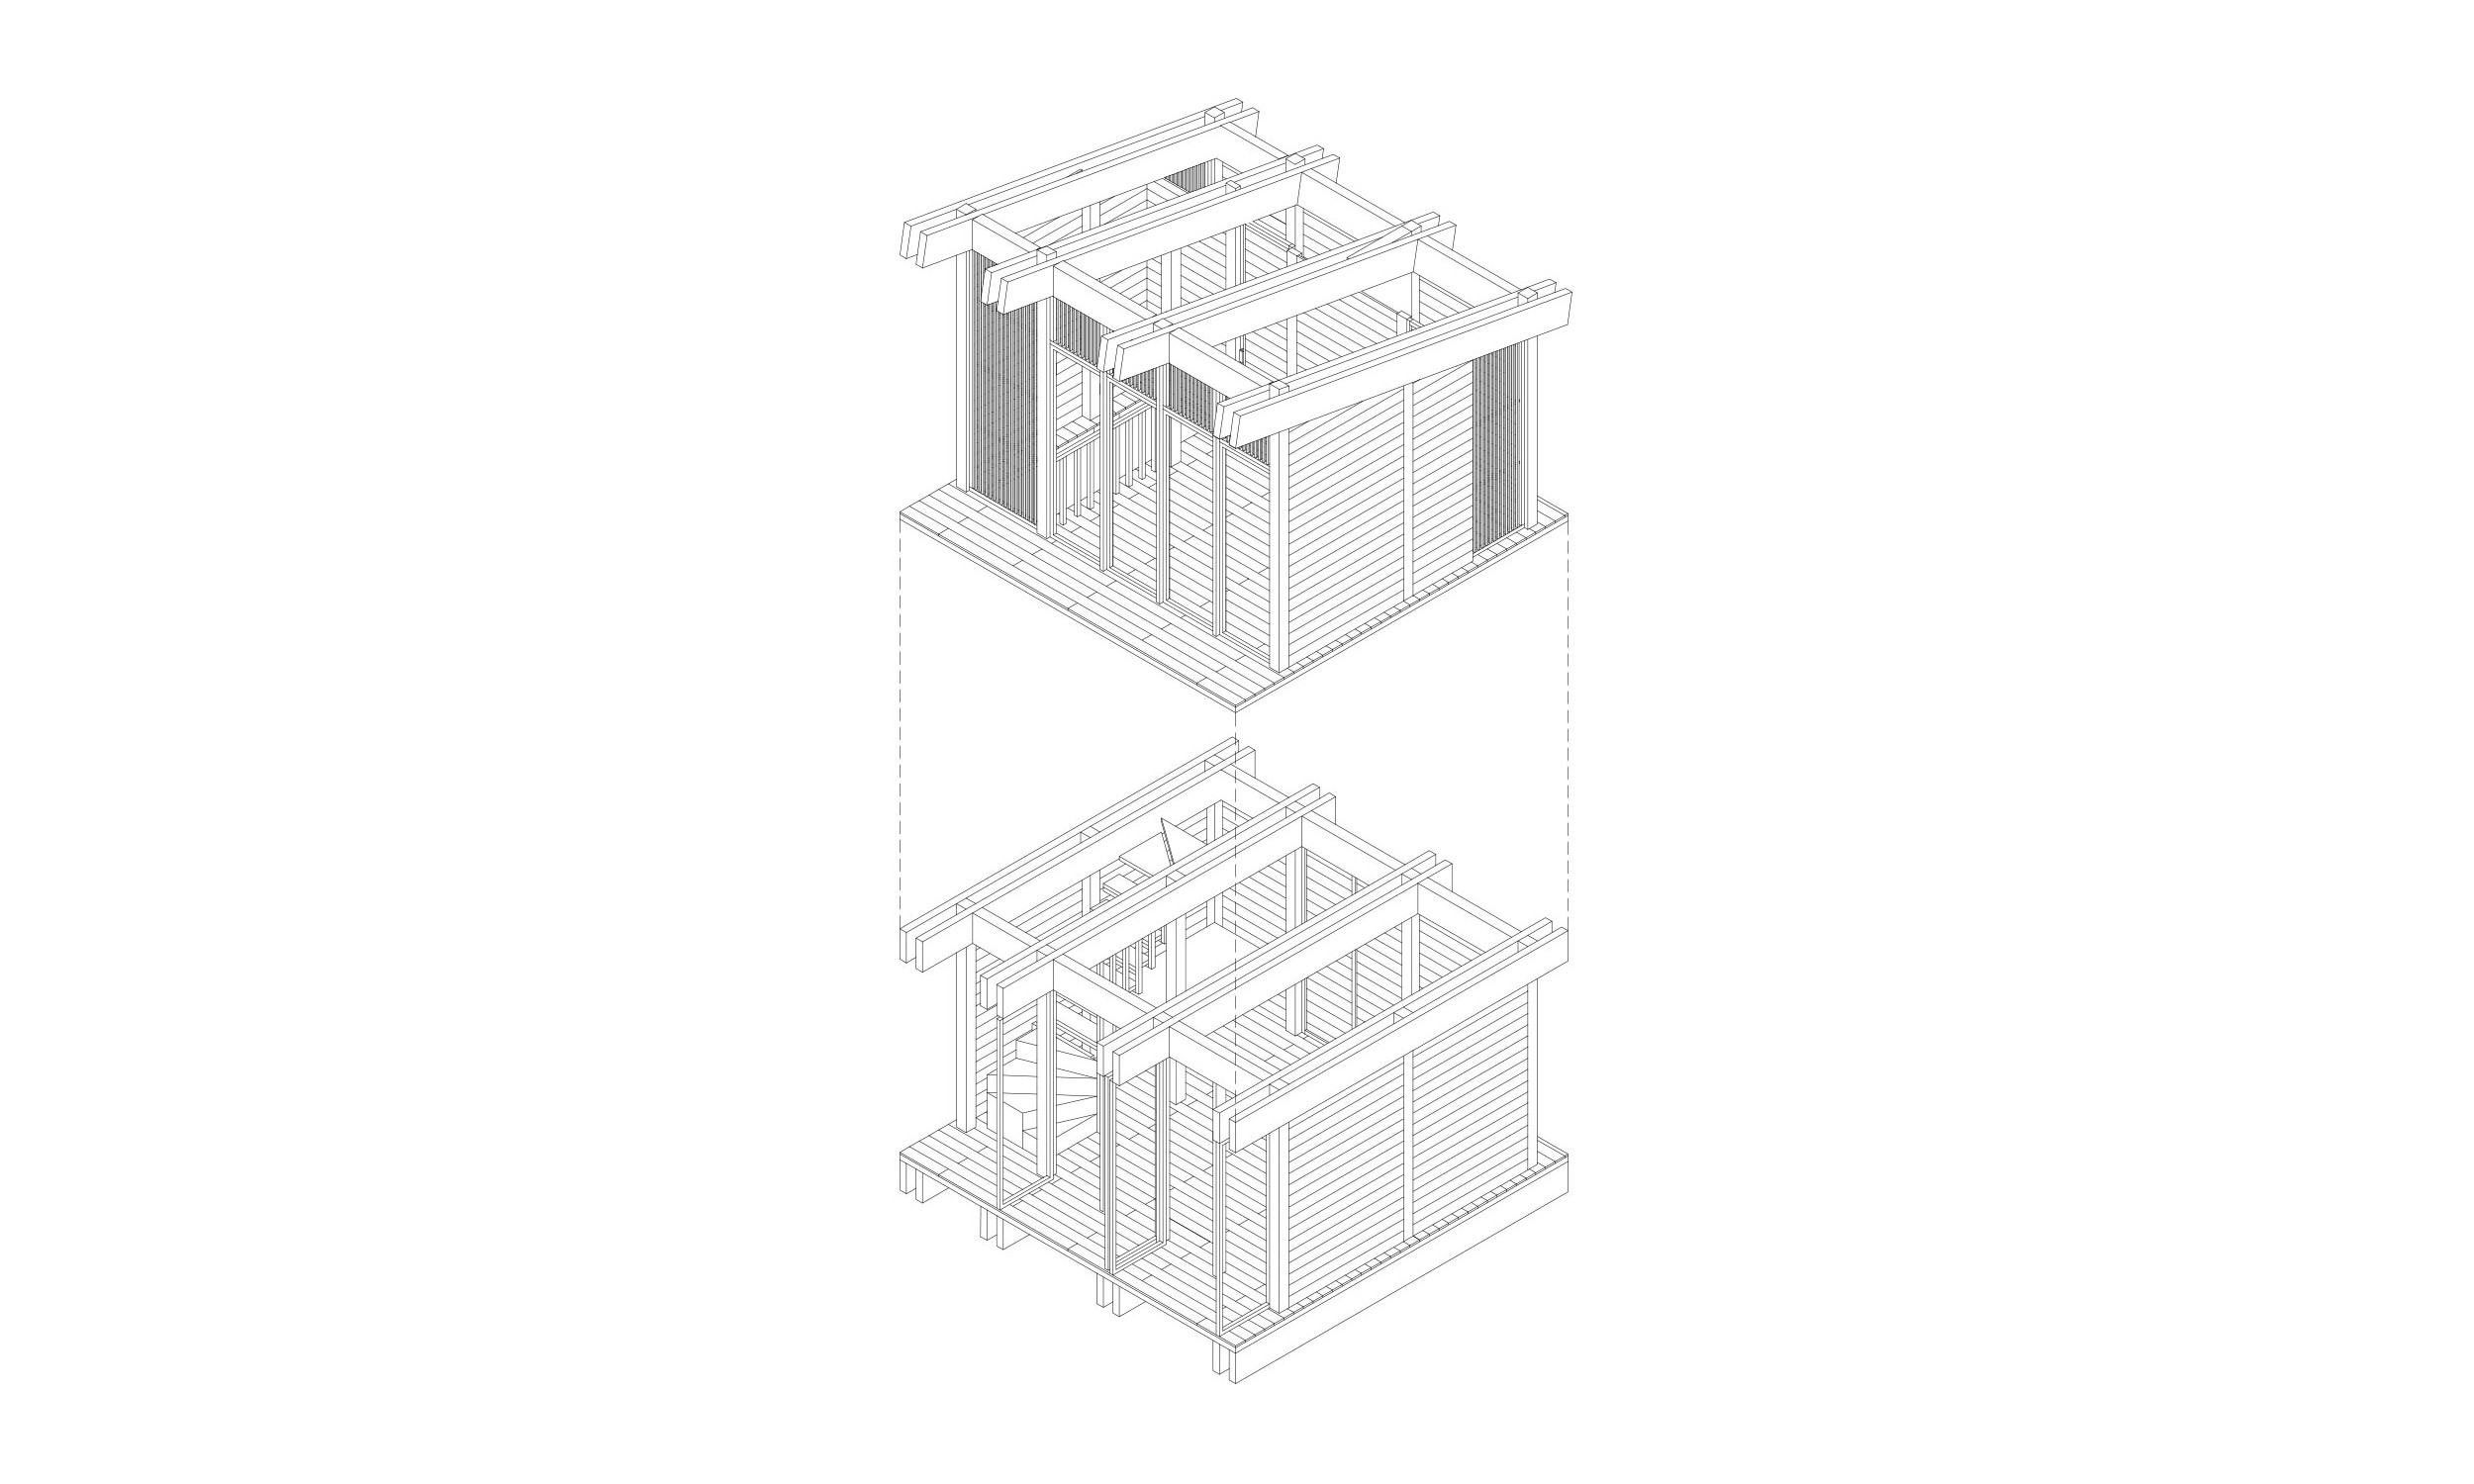 main_office_wooden_cabins_axonometry_3